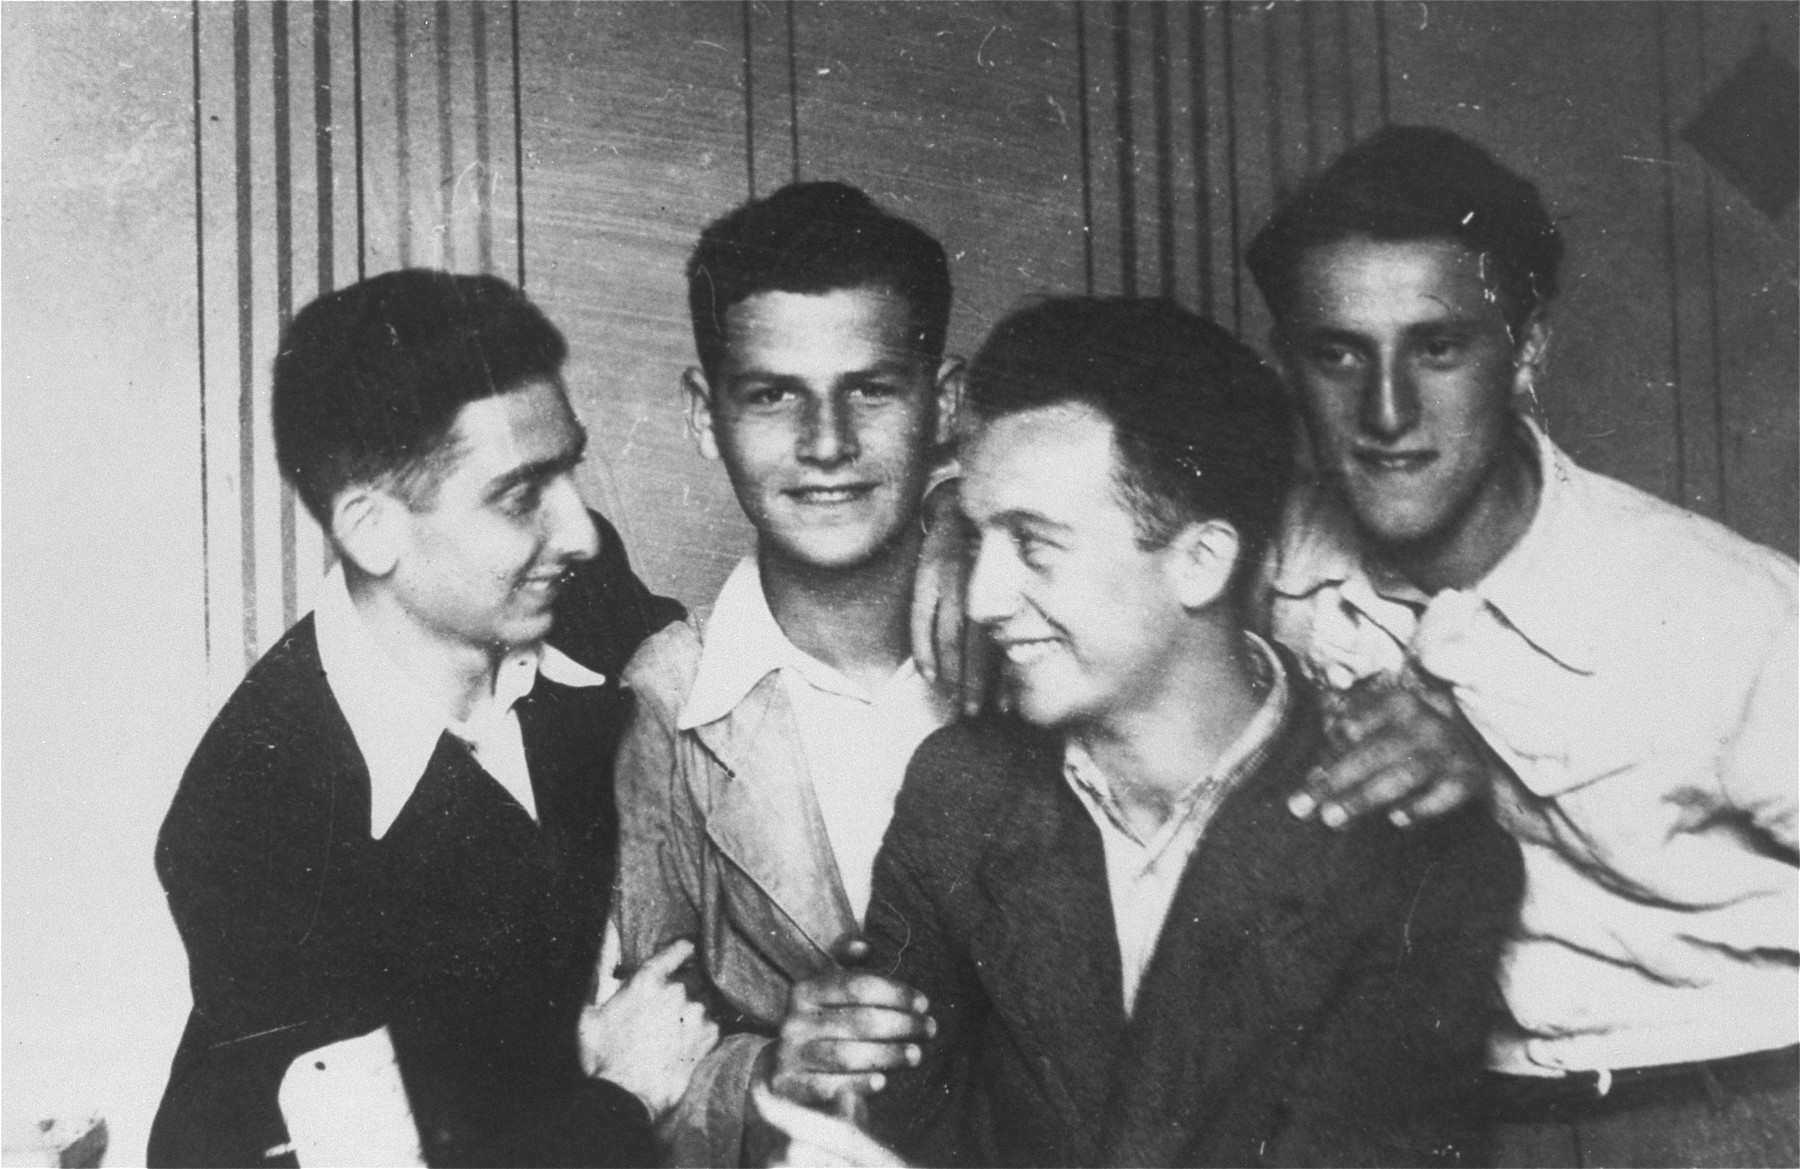 Four young male friends in the Borislaw ghetto.  Pictured from left to right are: Rolek Harmelin, Ducek Egit, Jurek Haberman (the donor's brother) and Imek Eisenstein.   Jurek  was shot by the Germans in the Borislaw labor camp on July 19, 1944, just three weeks before the arrival of the Red Army.   Rolek Harmelin survived the war and emigrated to Australia.